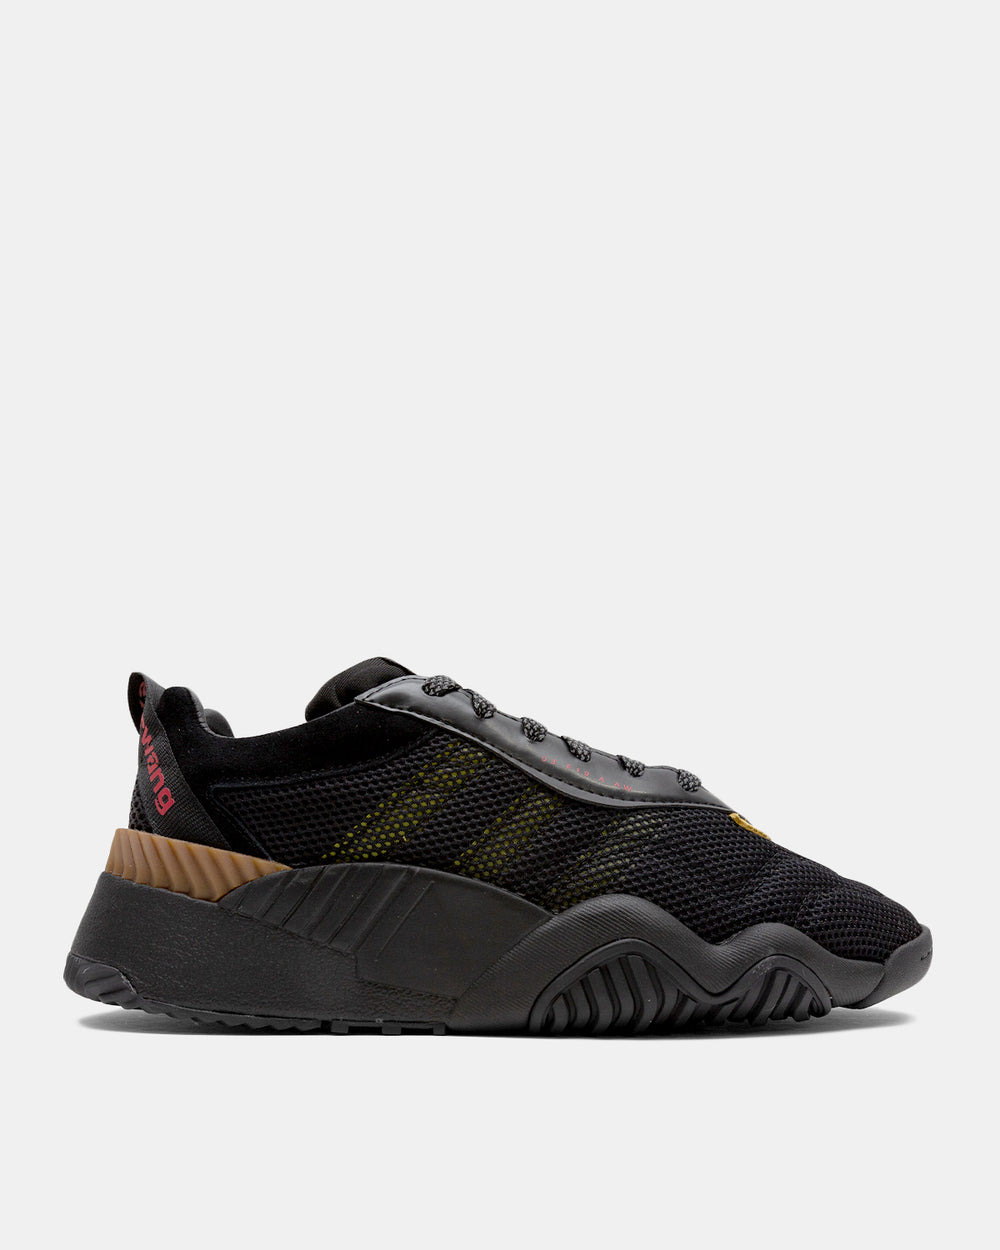 adidas Consortium - AW Turnout Trainer (Core Black | Yellow | Light Brown)